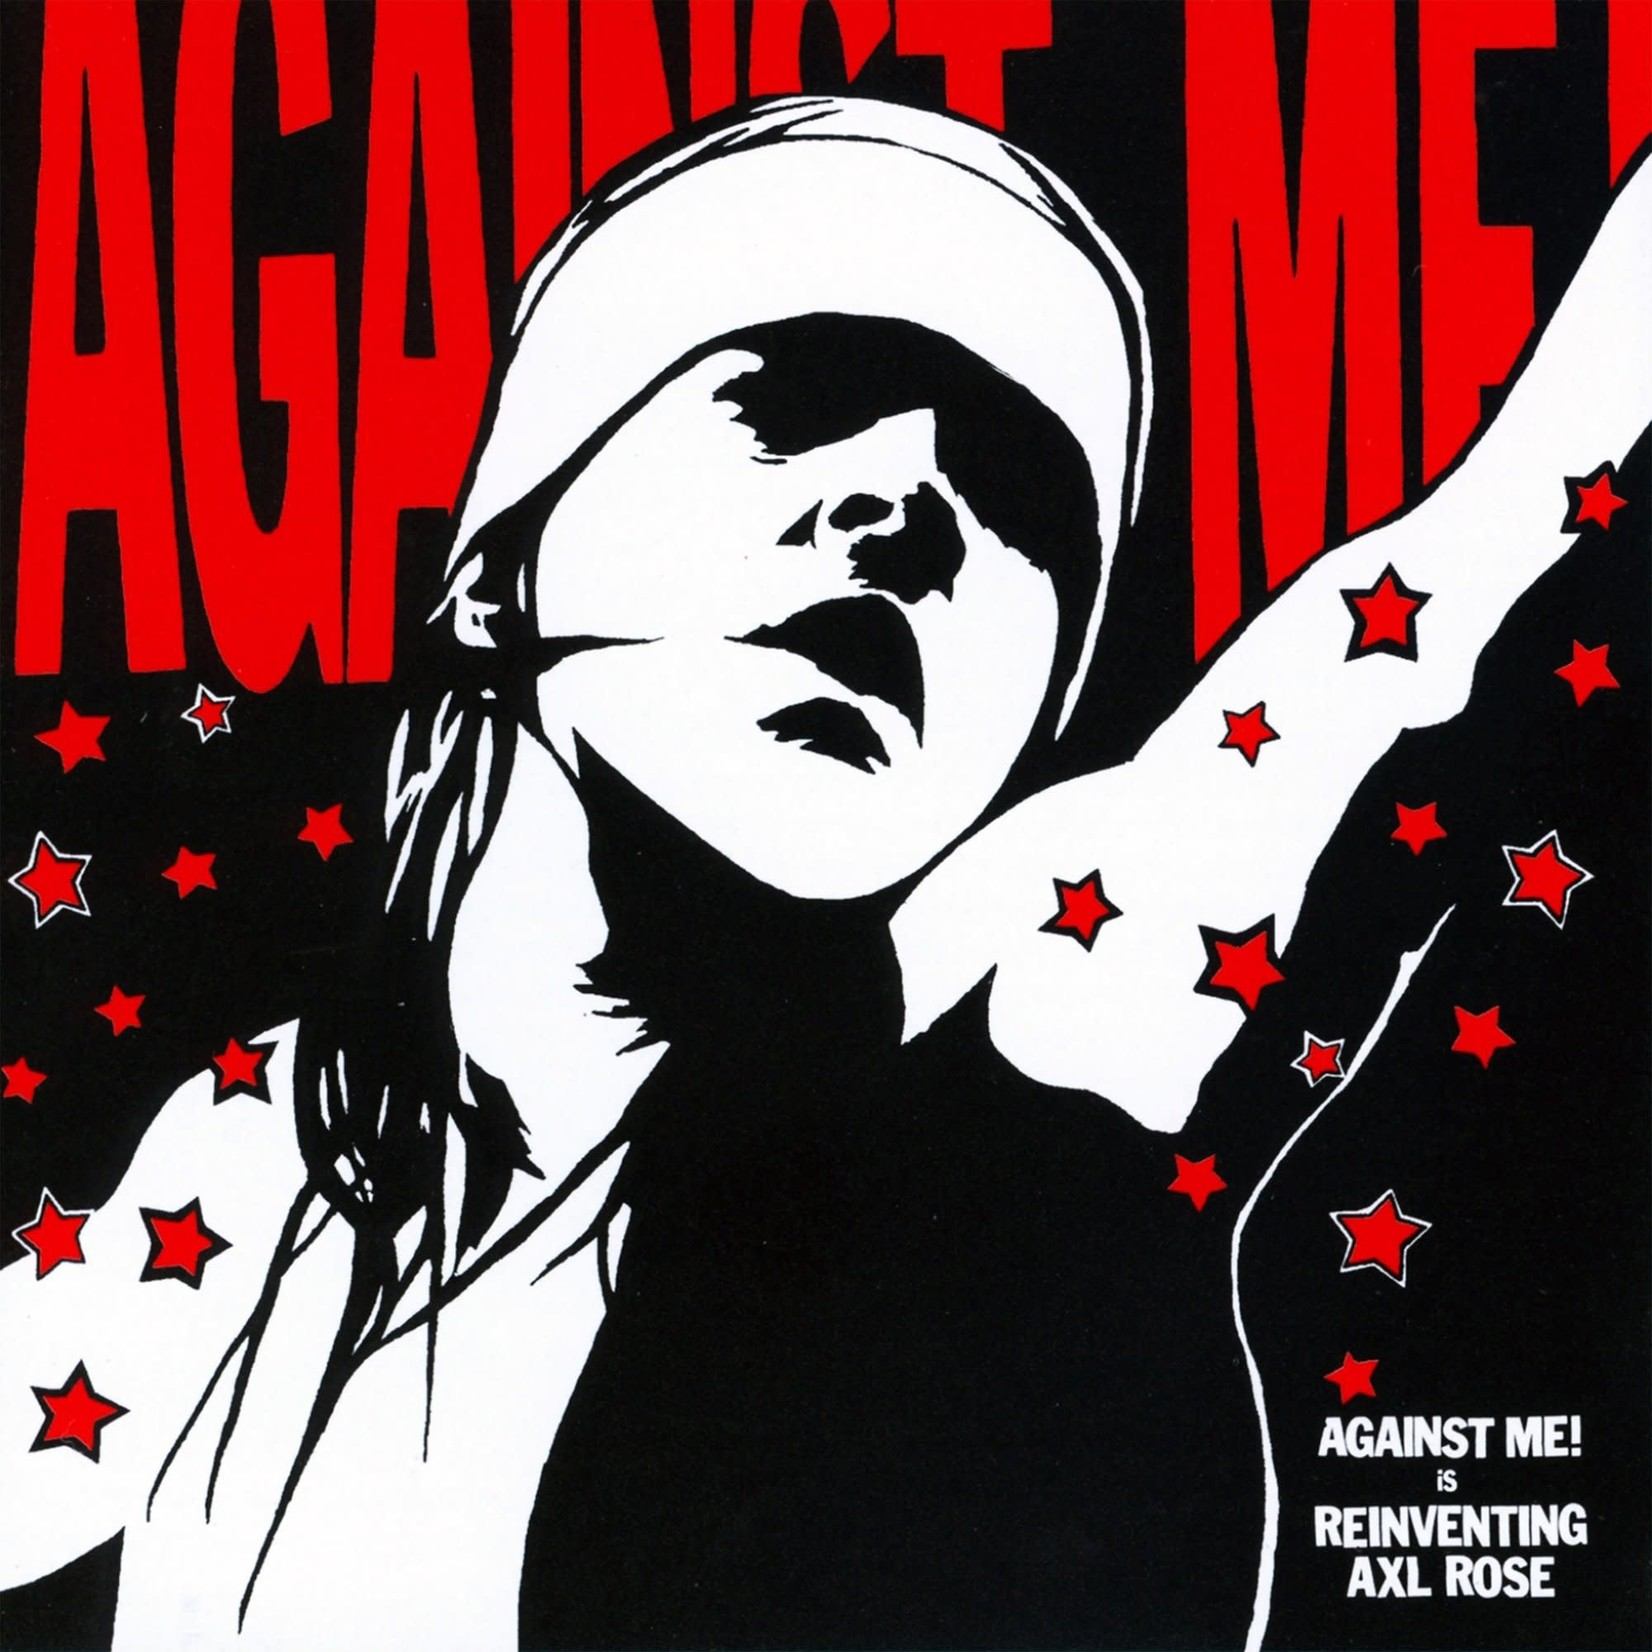 [New] Against Me!: Reinventing Axl Rose